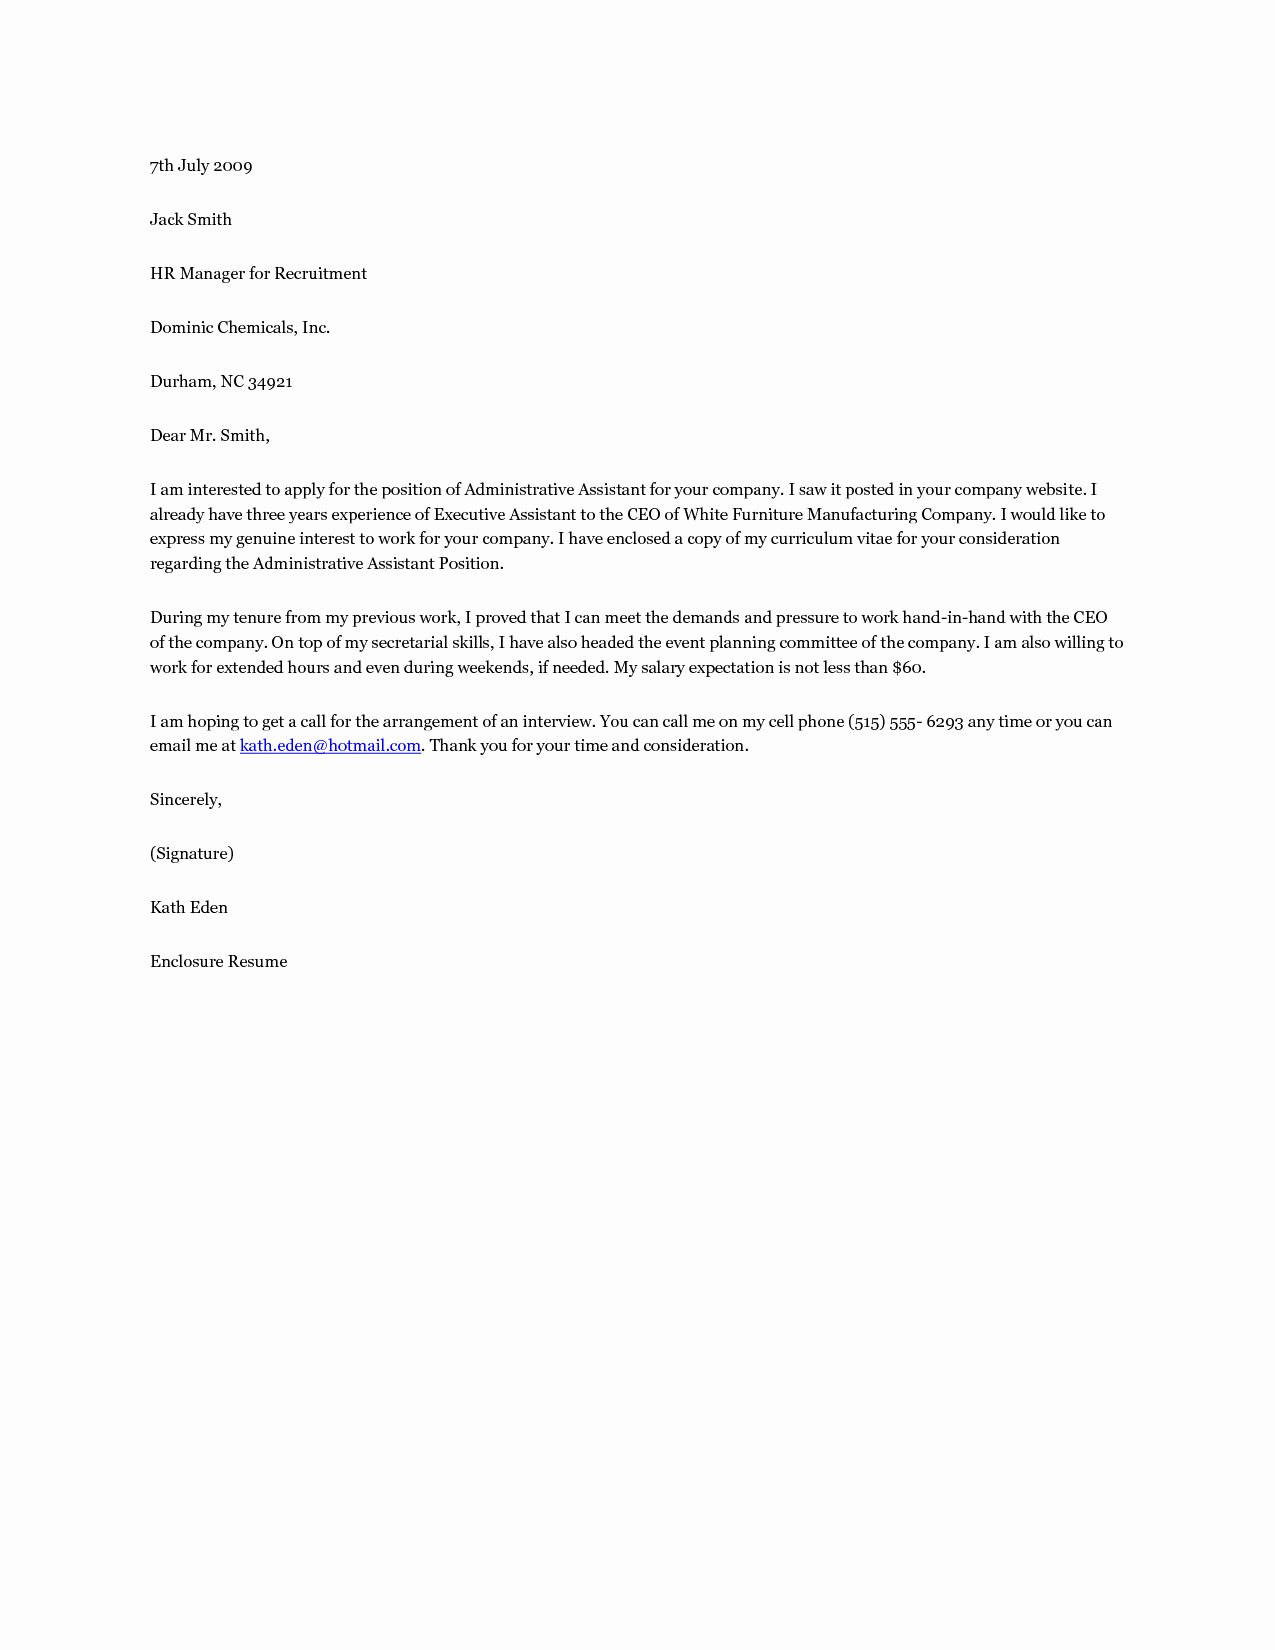 Executive Administrative assistant Cover Letter Luxury the Best Cover Letter for Administrative assistant